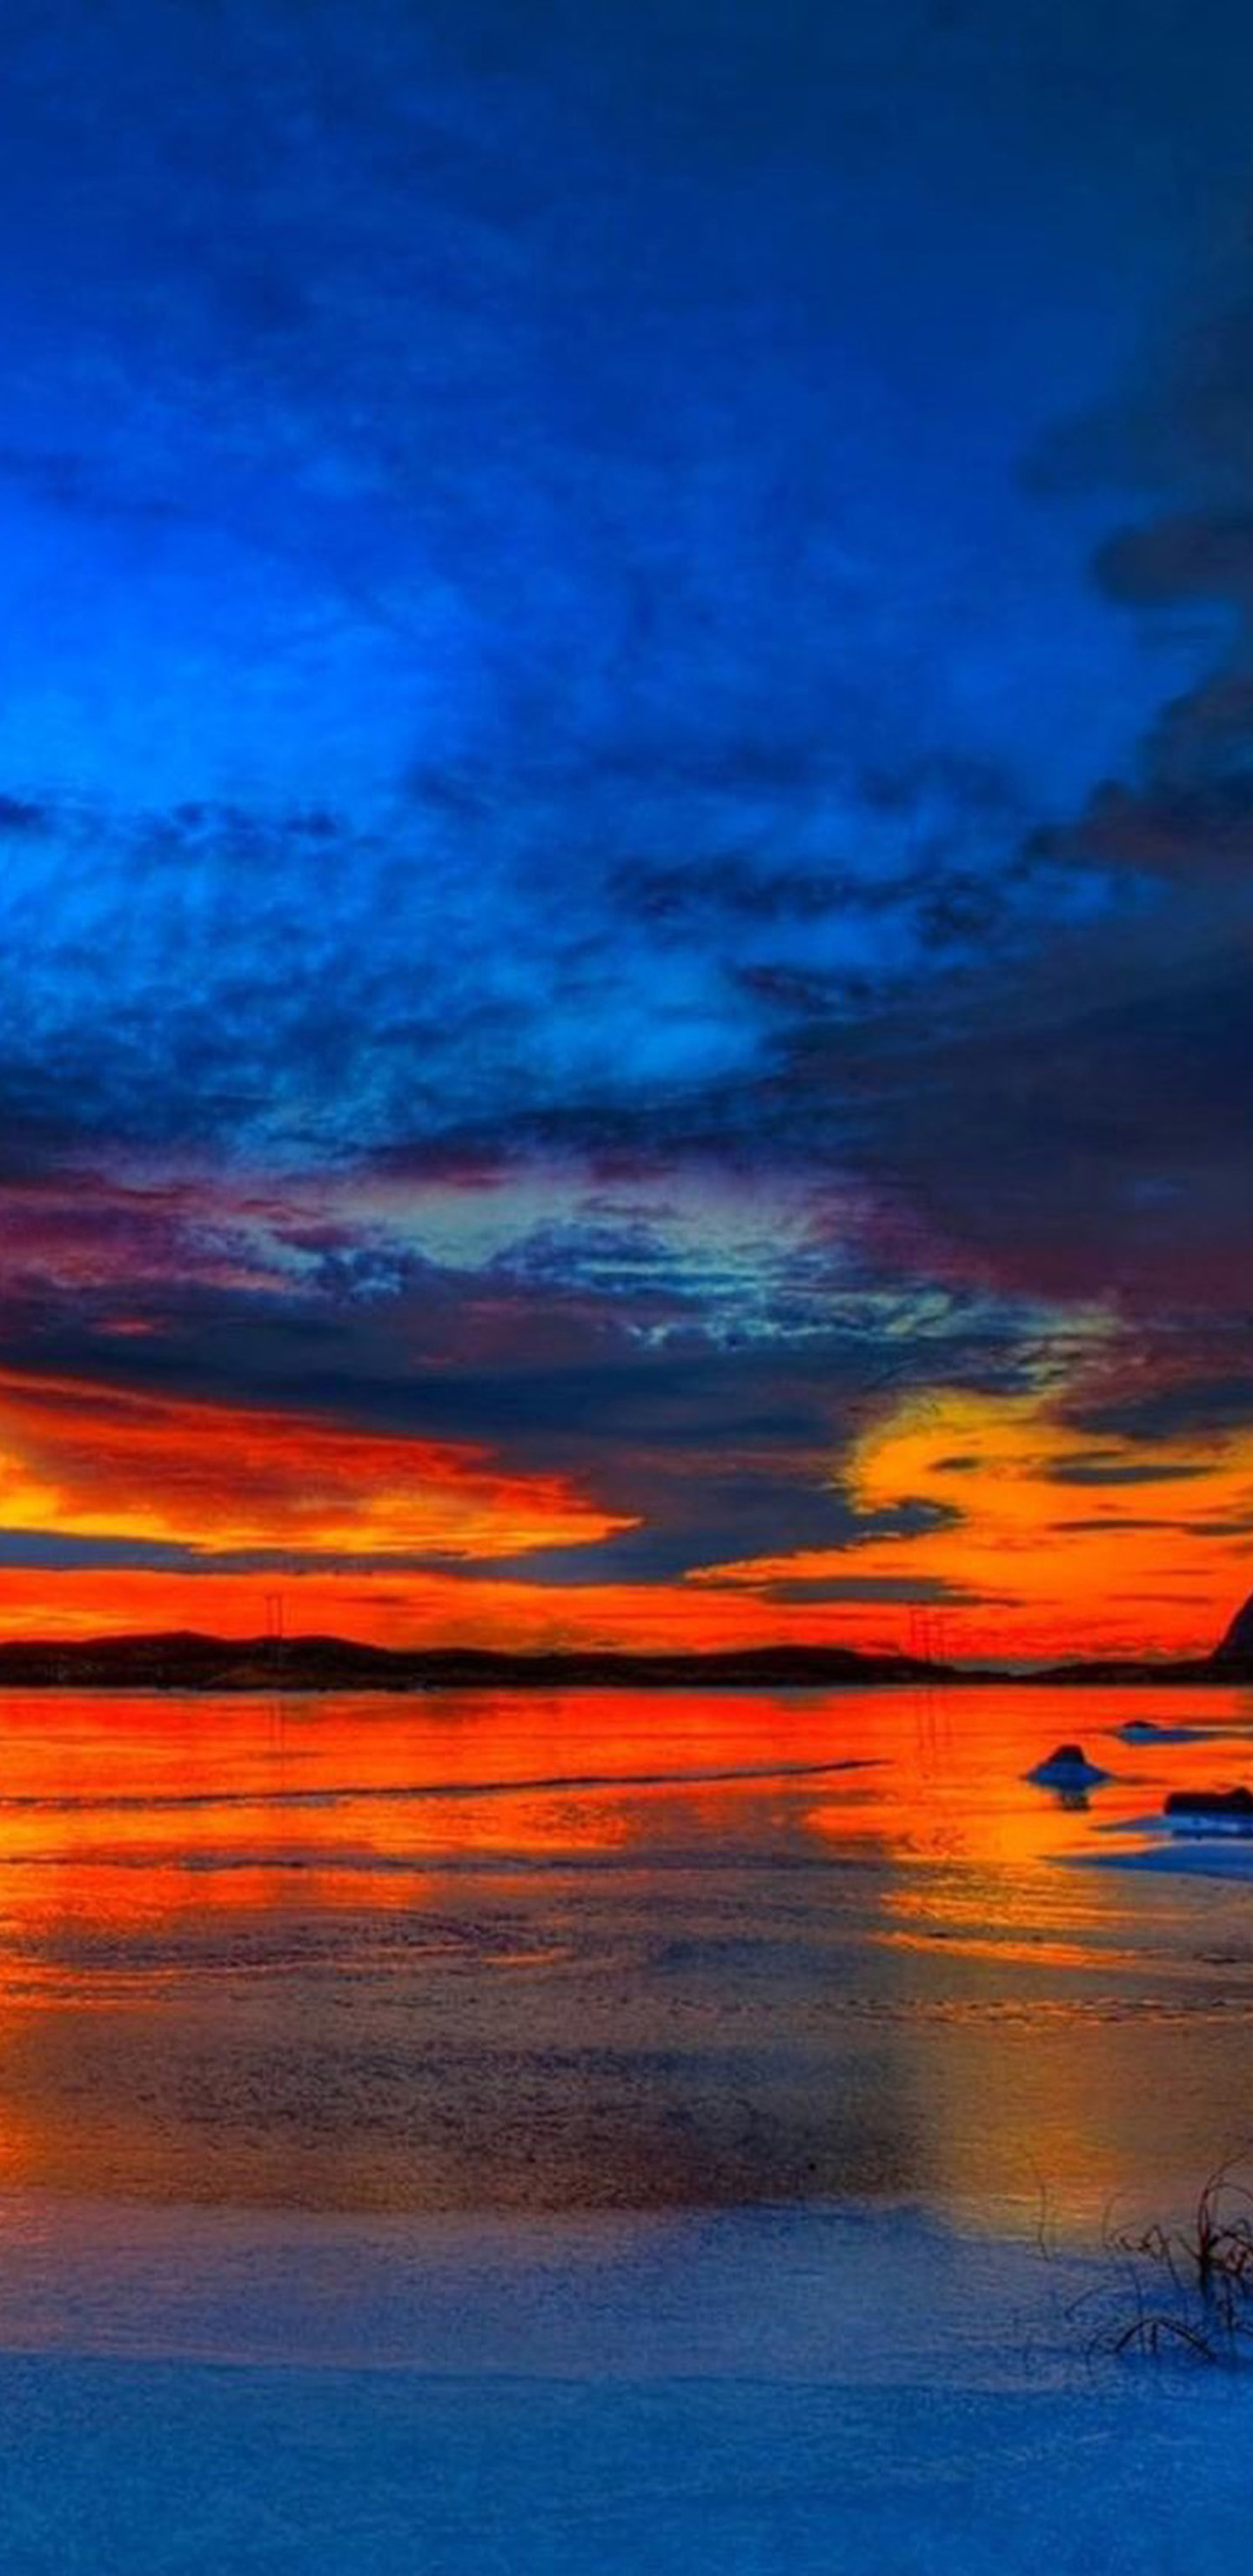 Sunset Samsung Galaxy S8 Wallpapers 80 Galaxy S8 Wallpapers 1440x2960